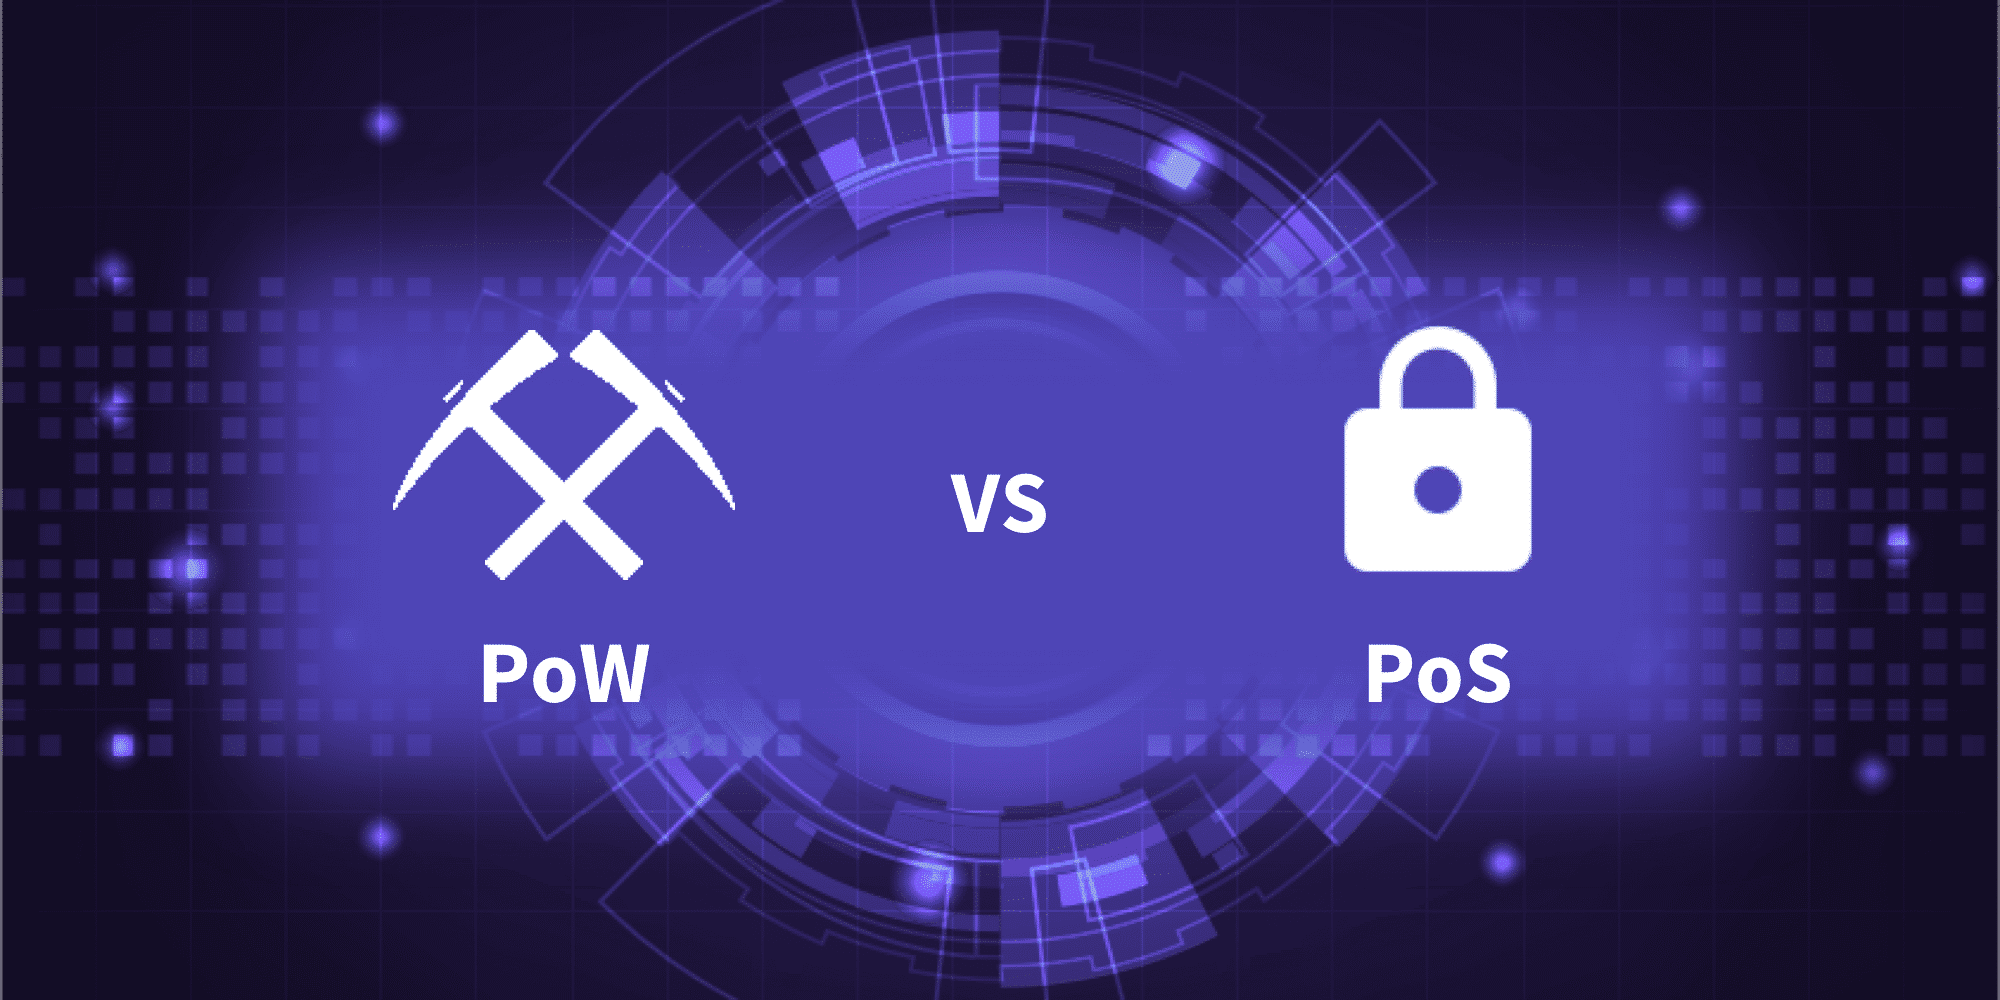 25.06.20 Proof of work vs. Proof of stake